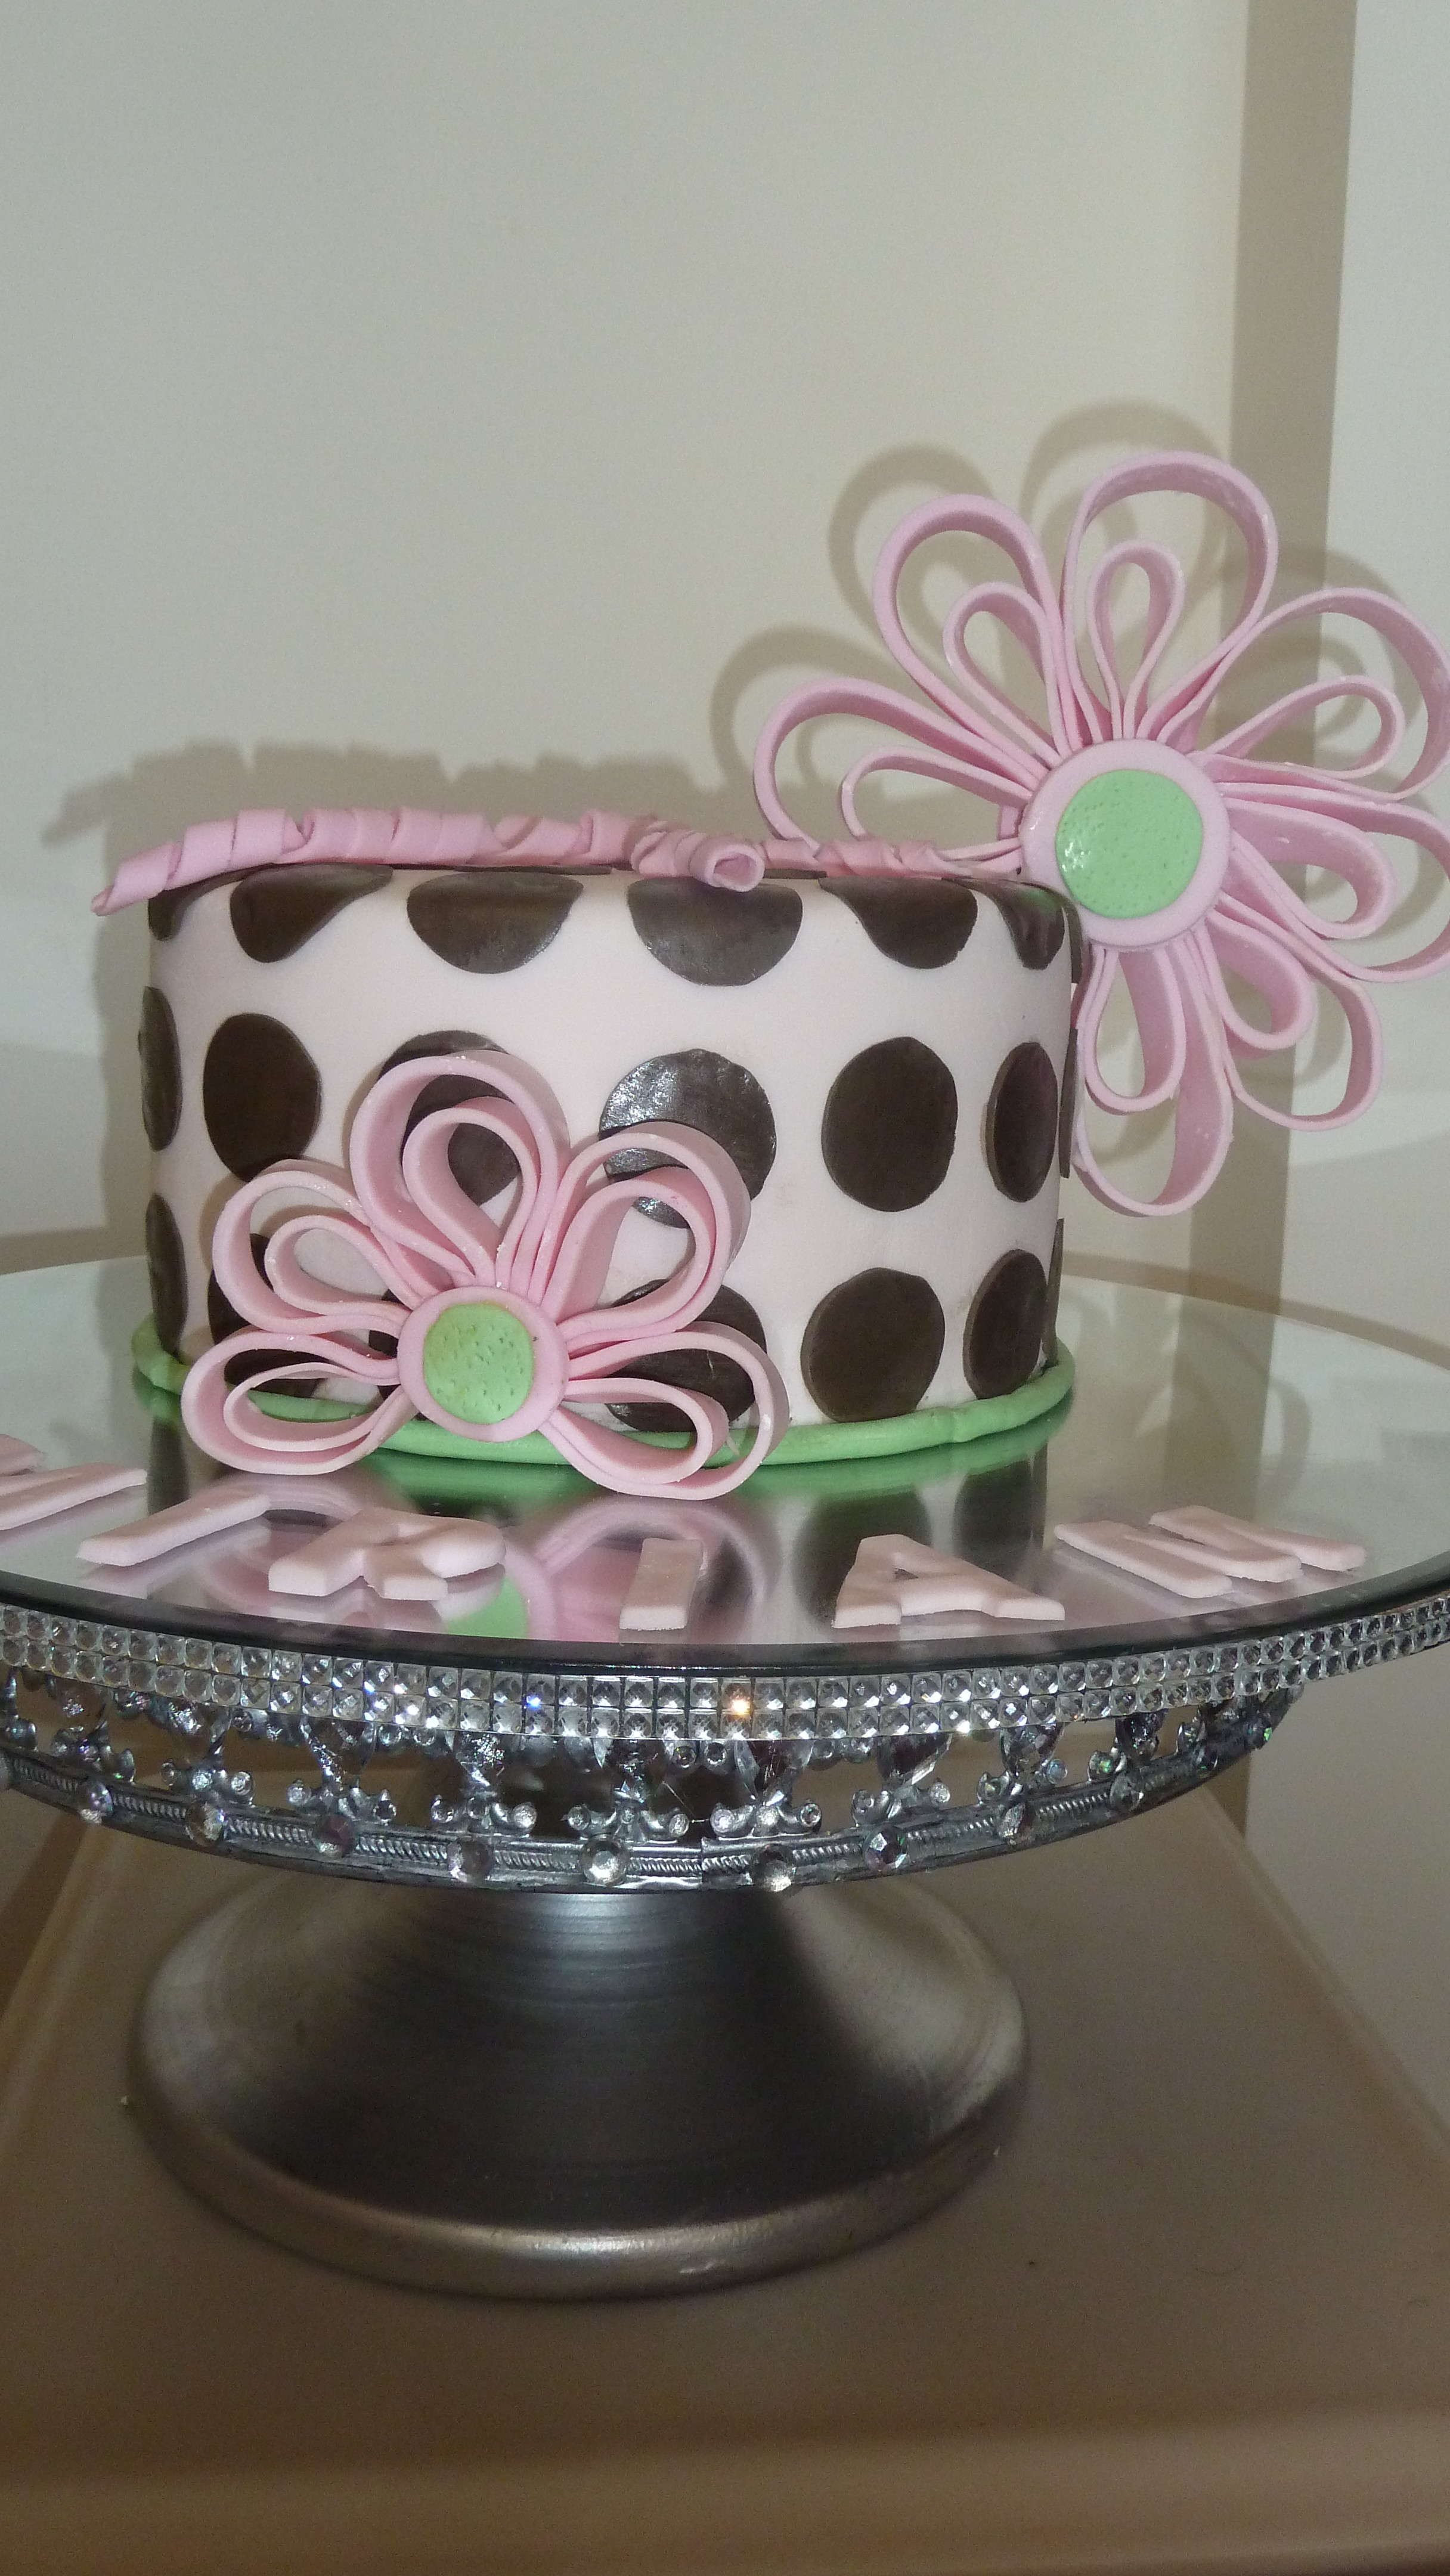 Best ideas about Adult Birthday Cake . Save or Pin Adult Birthday Cakes Now.